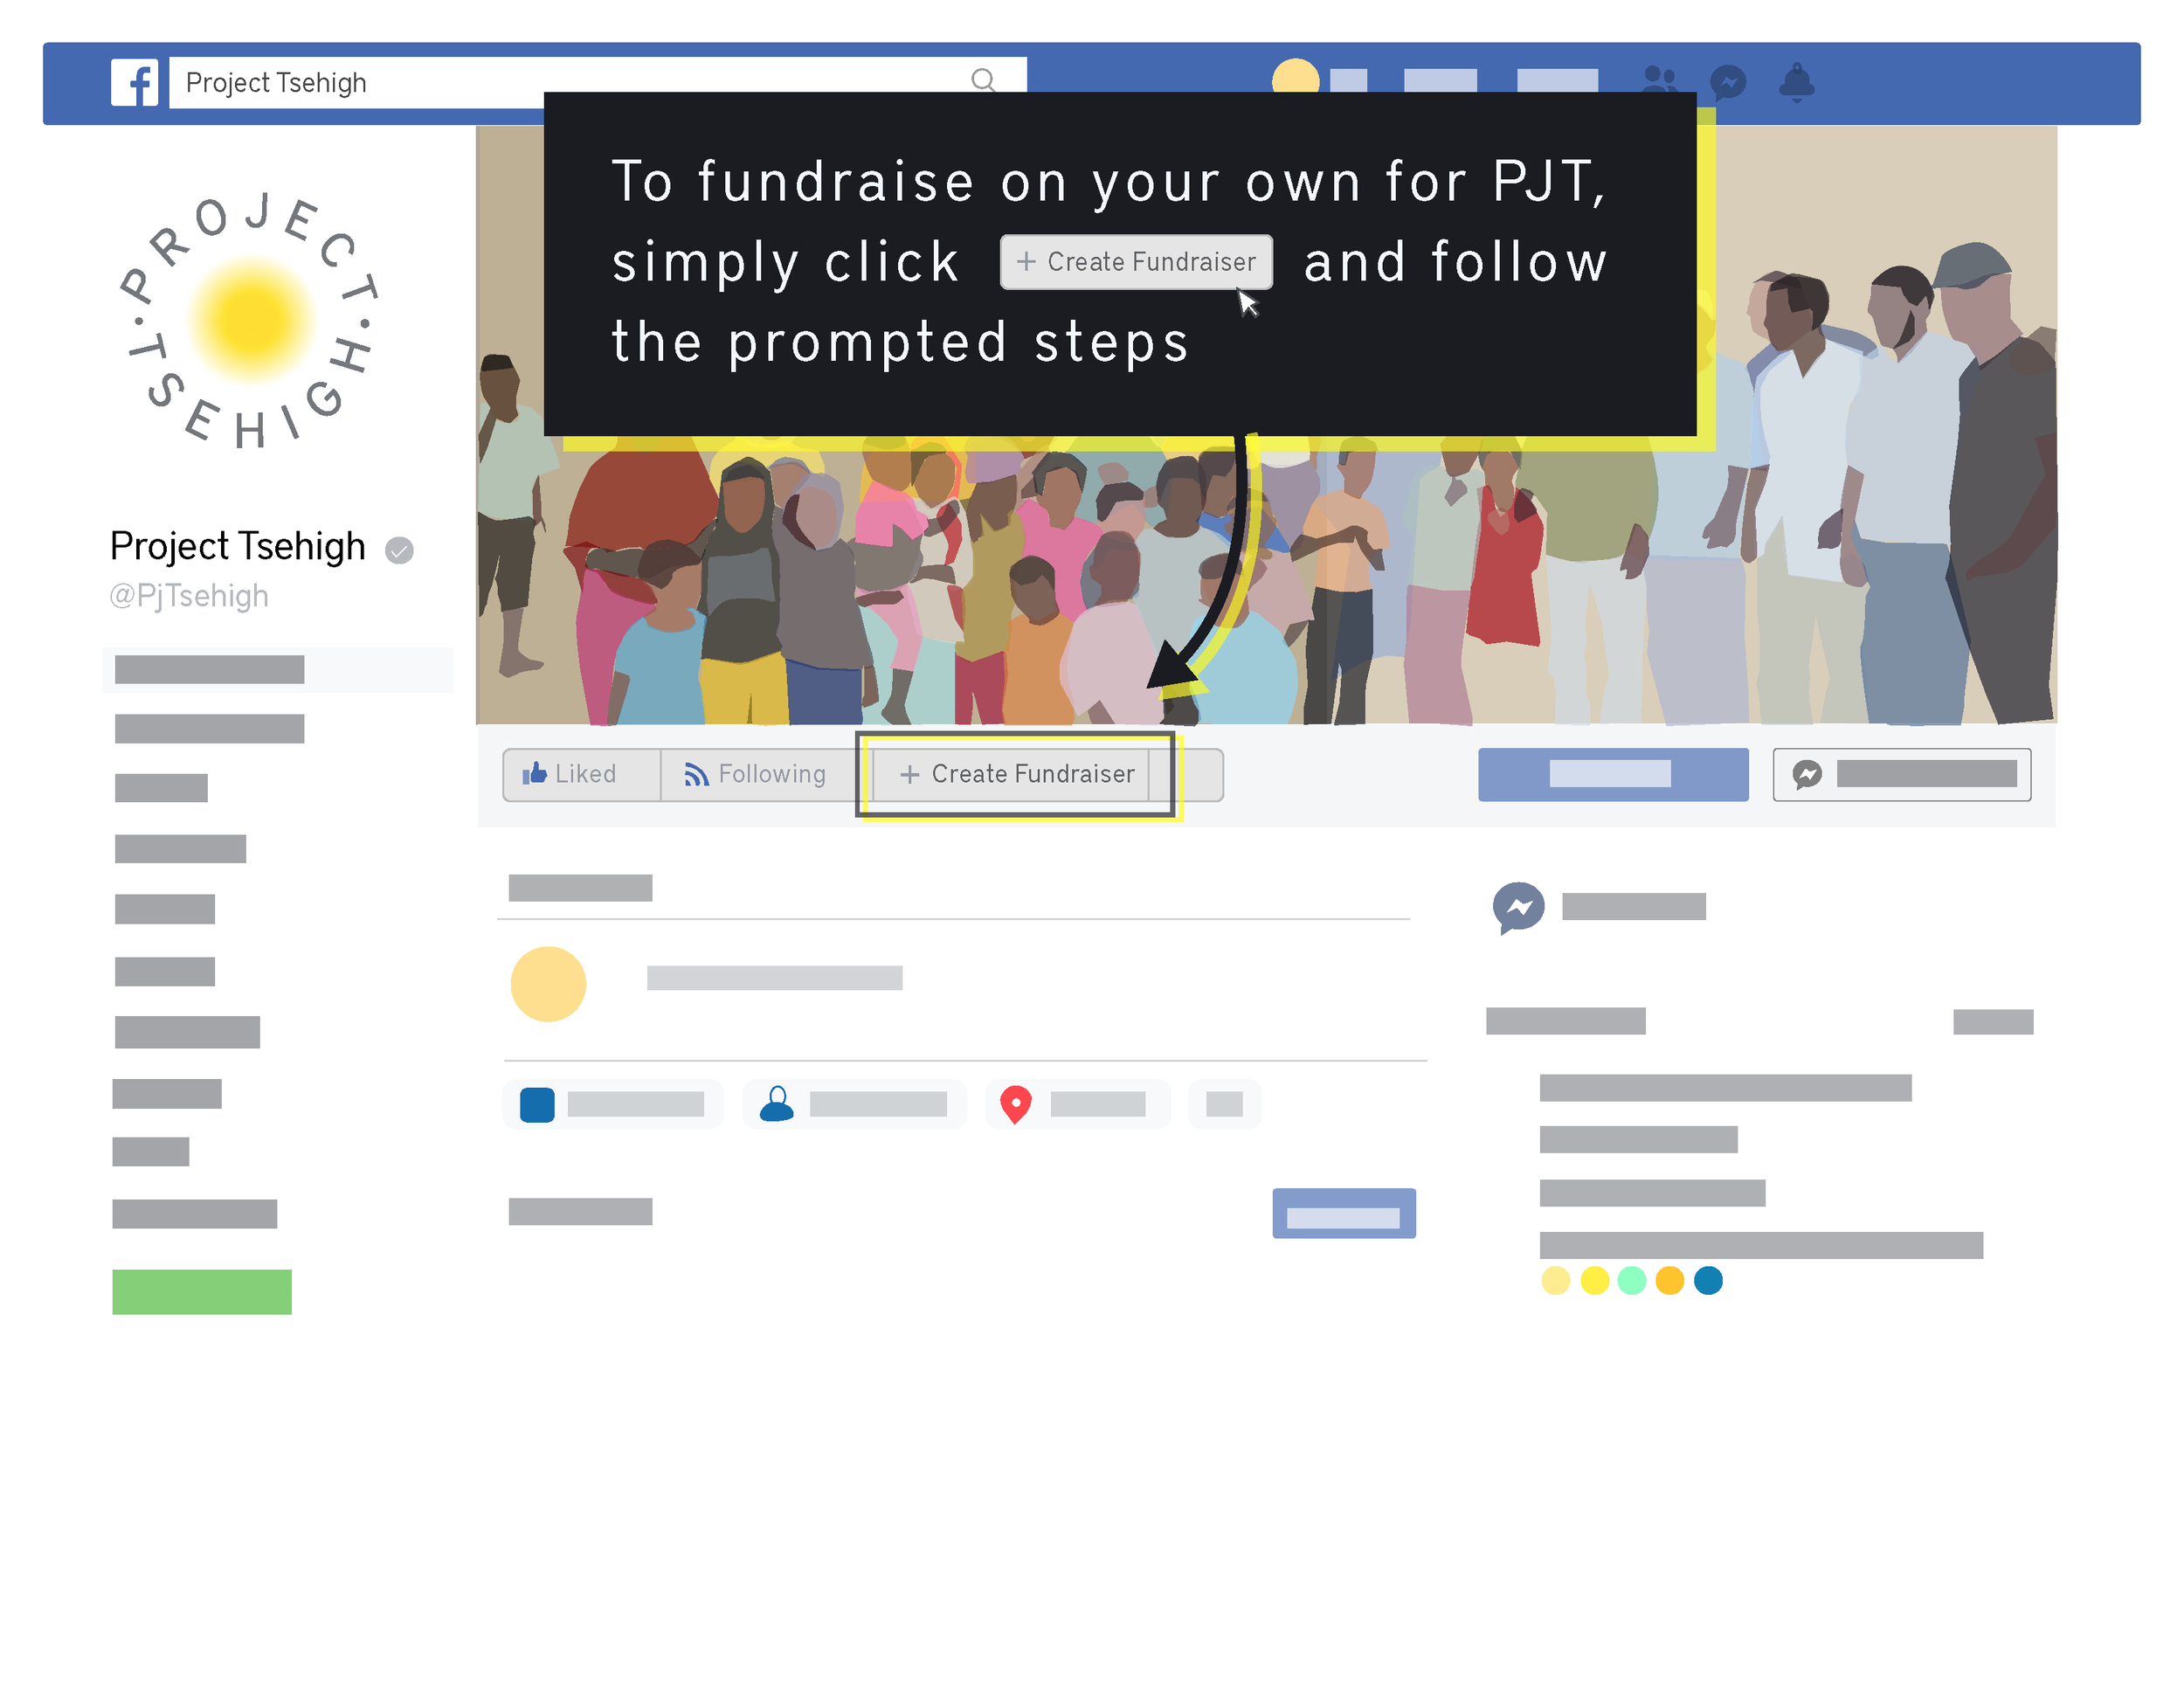 """Click """"+ Create a Fundraiser"""" on image"""